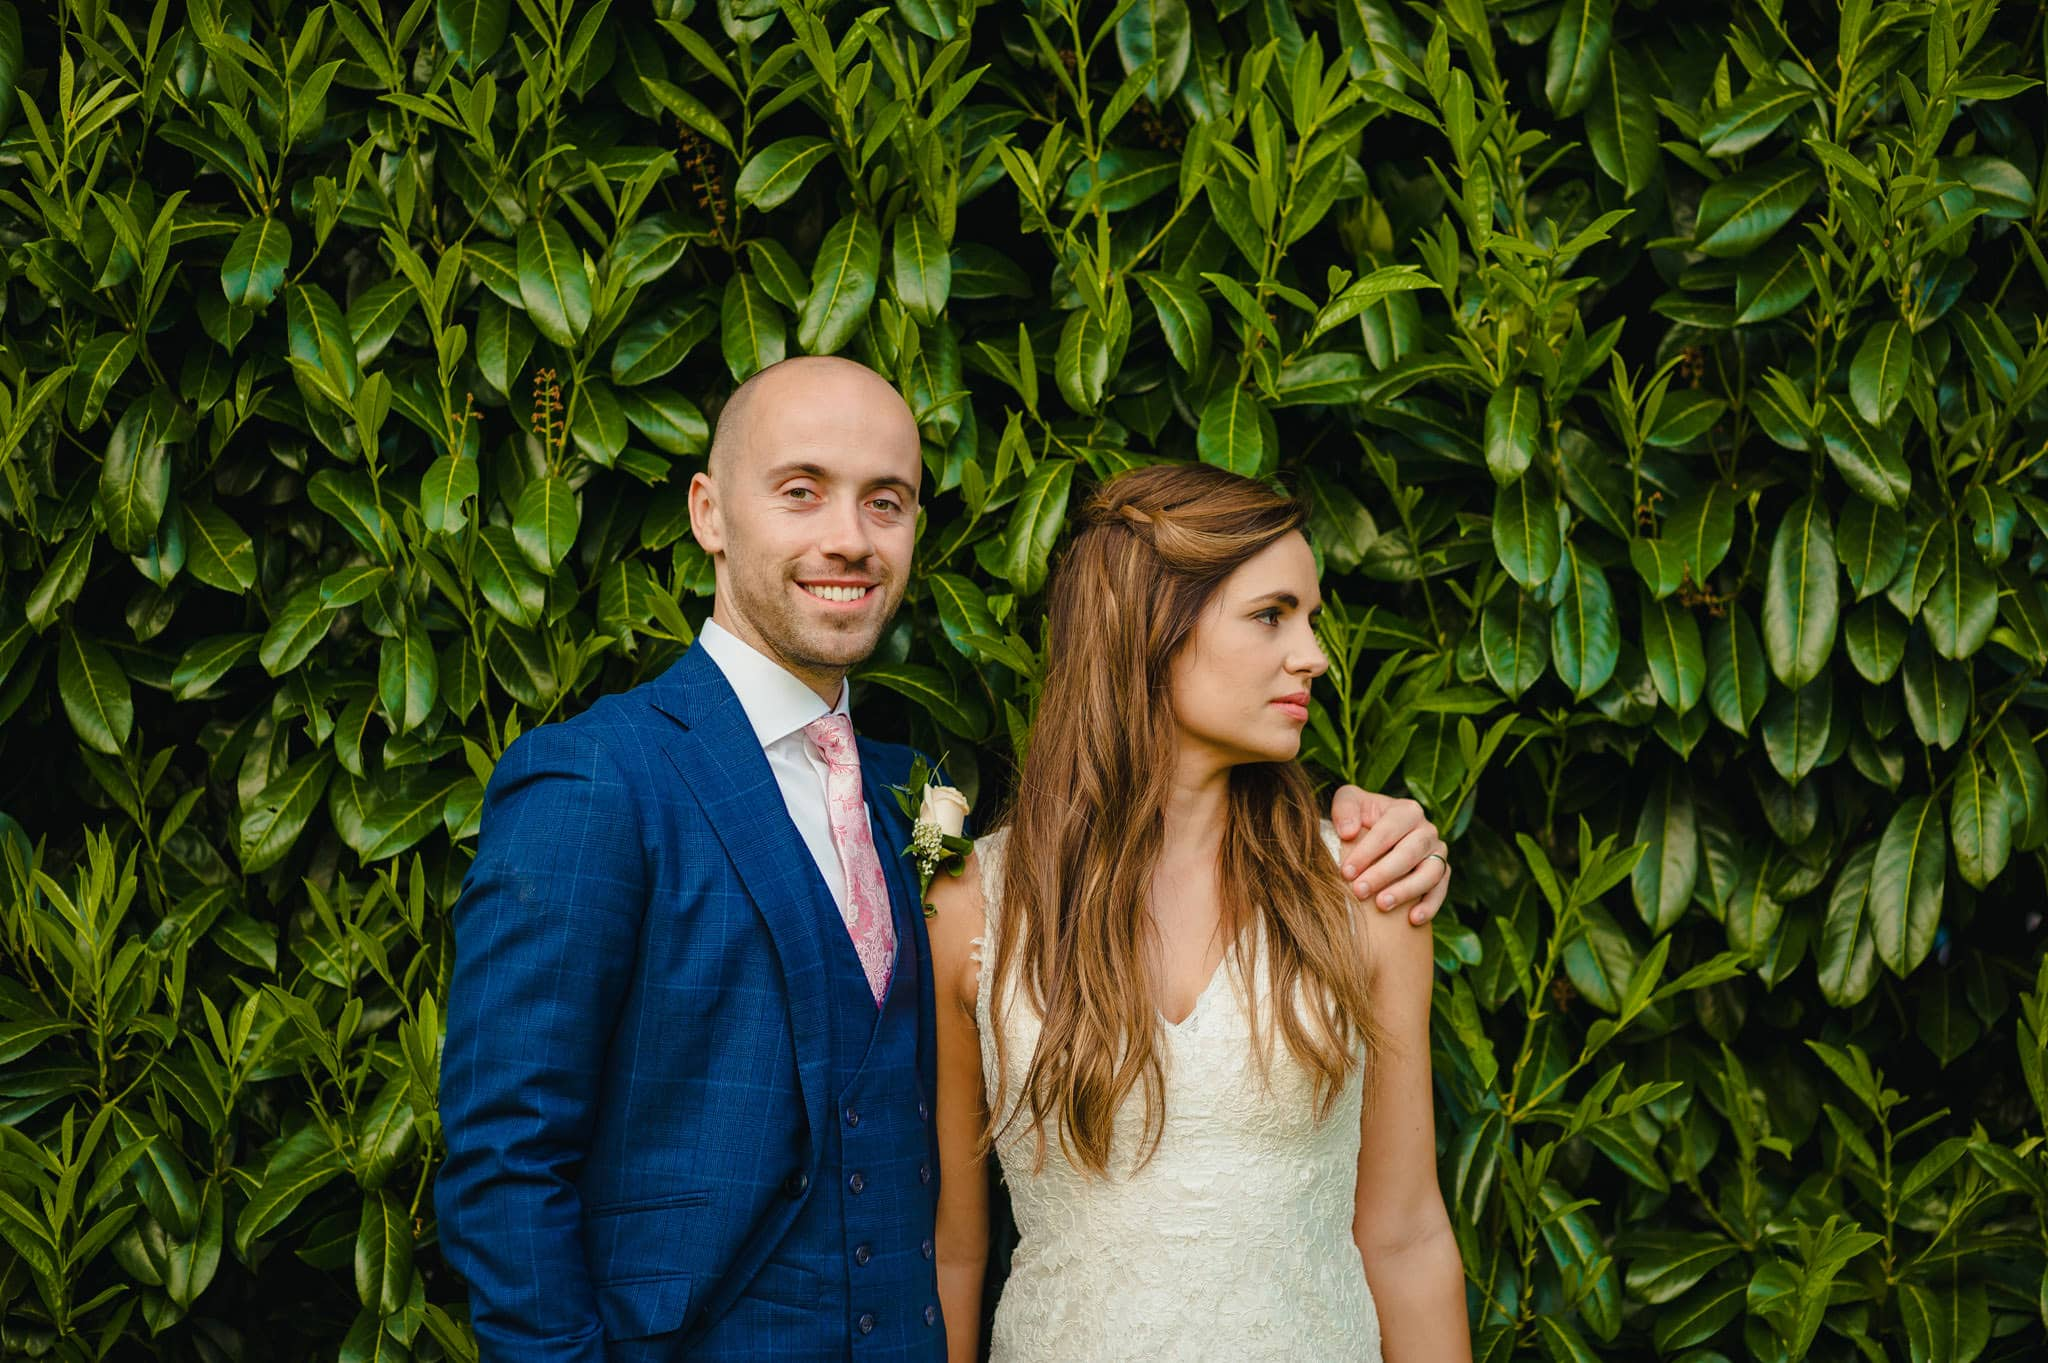 Wedding at Redhouse Barn in Stoke Prior, Worcestershire 167